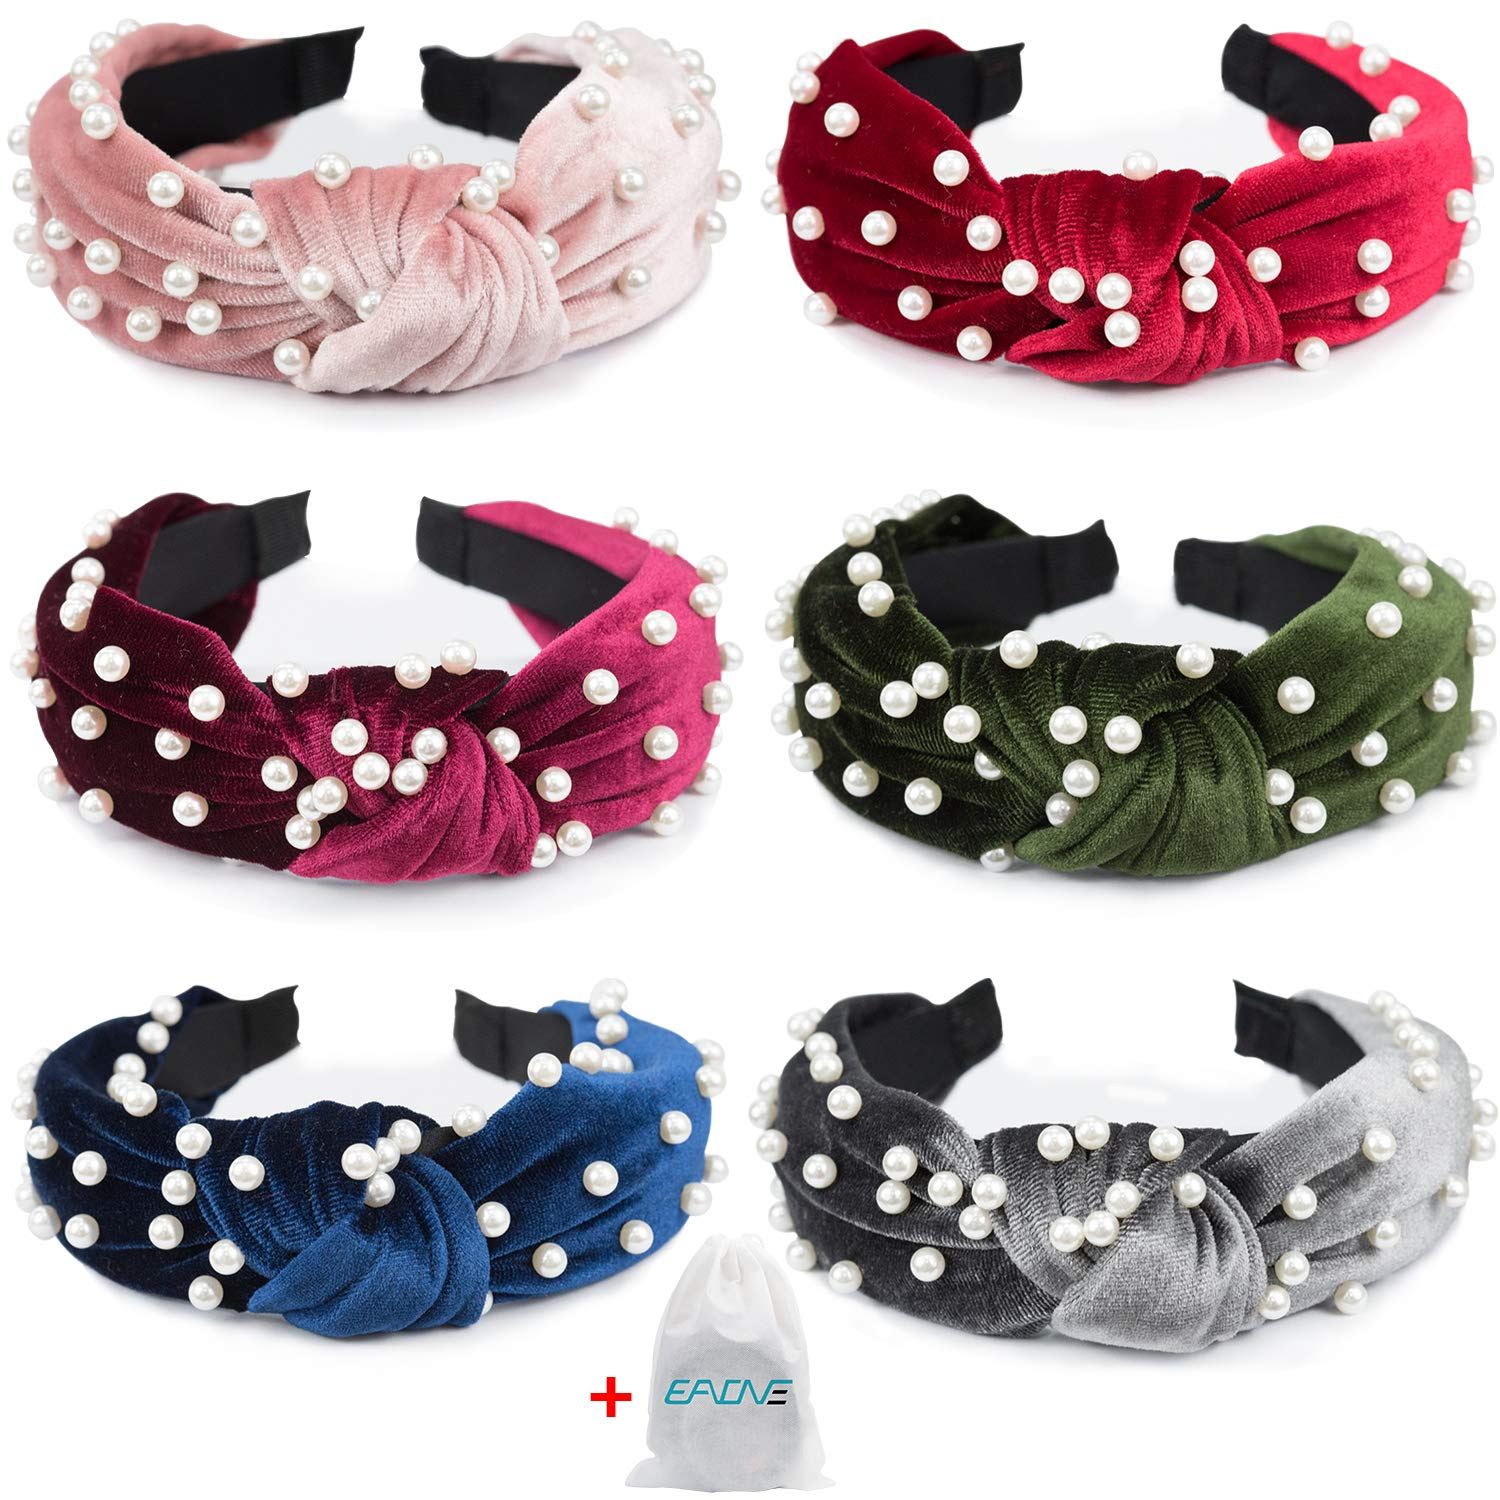 EAONE Pearl Headbands 6 Colors  Knotted Headbands for Women Fashion Turban Headband Hair Bands Wide Headbands Accessories for Girls with 1 Pouch Bag